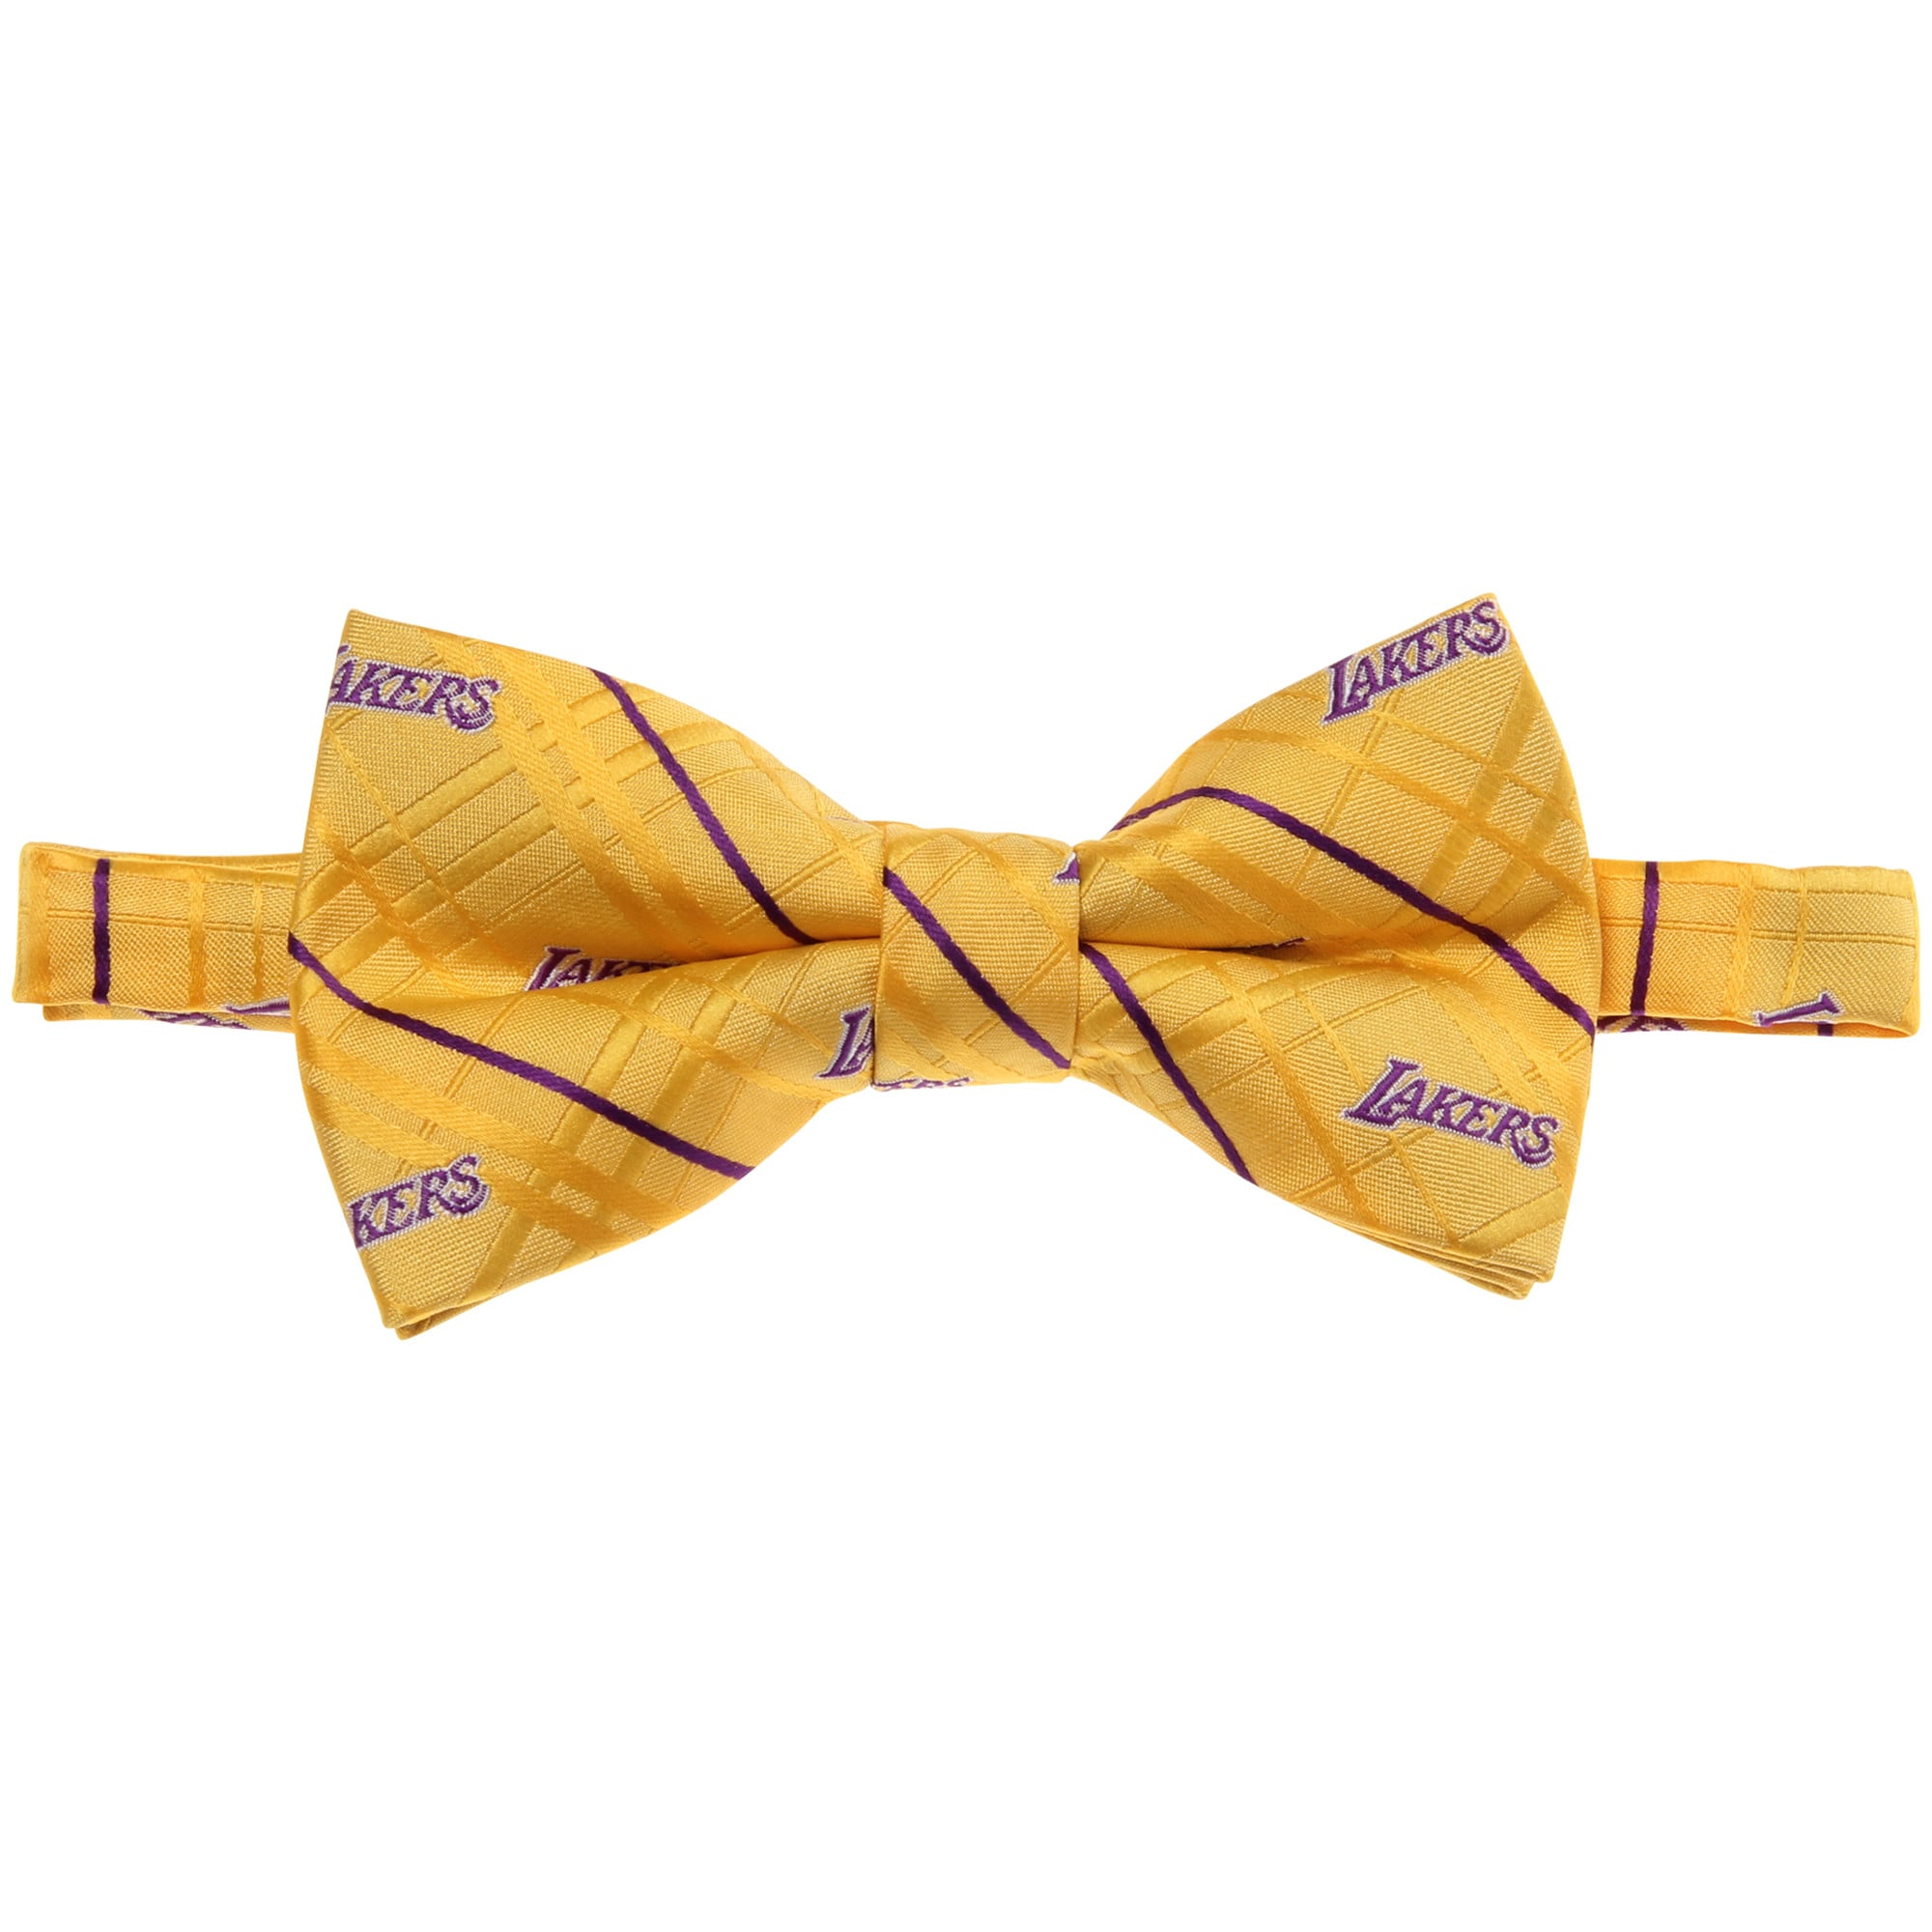 Los Angeles Lakers Oxford Bow Tie - Gold